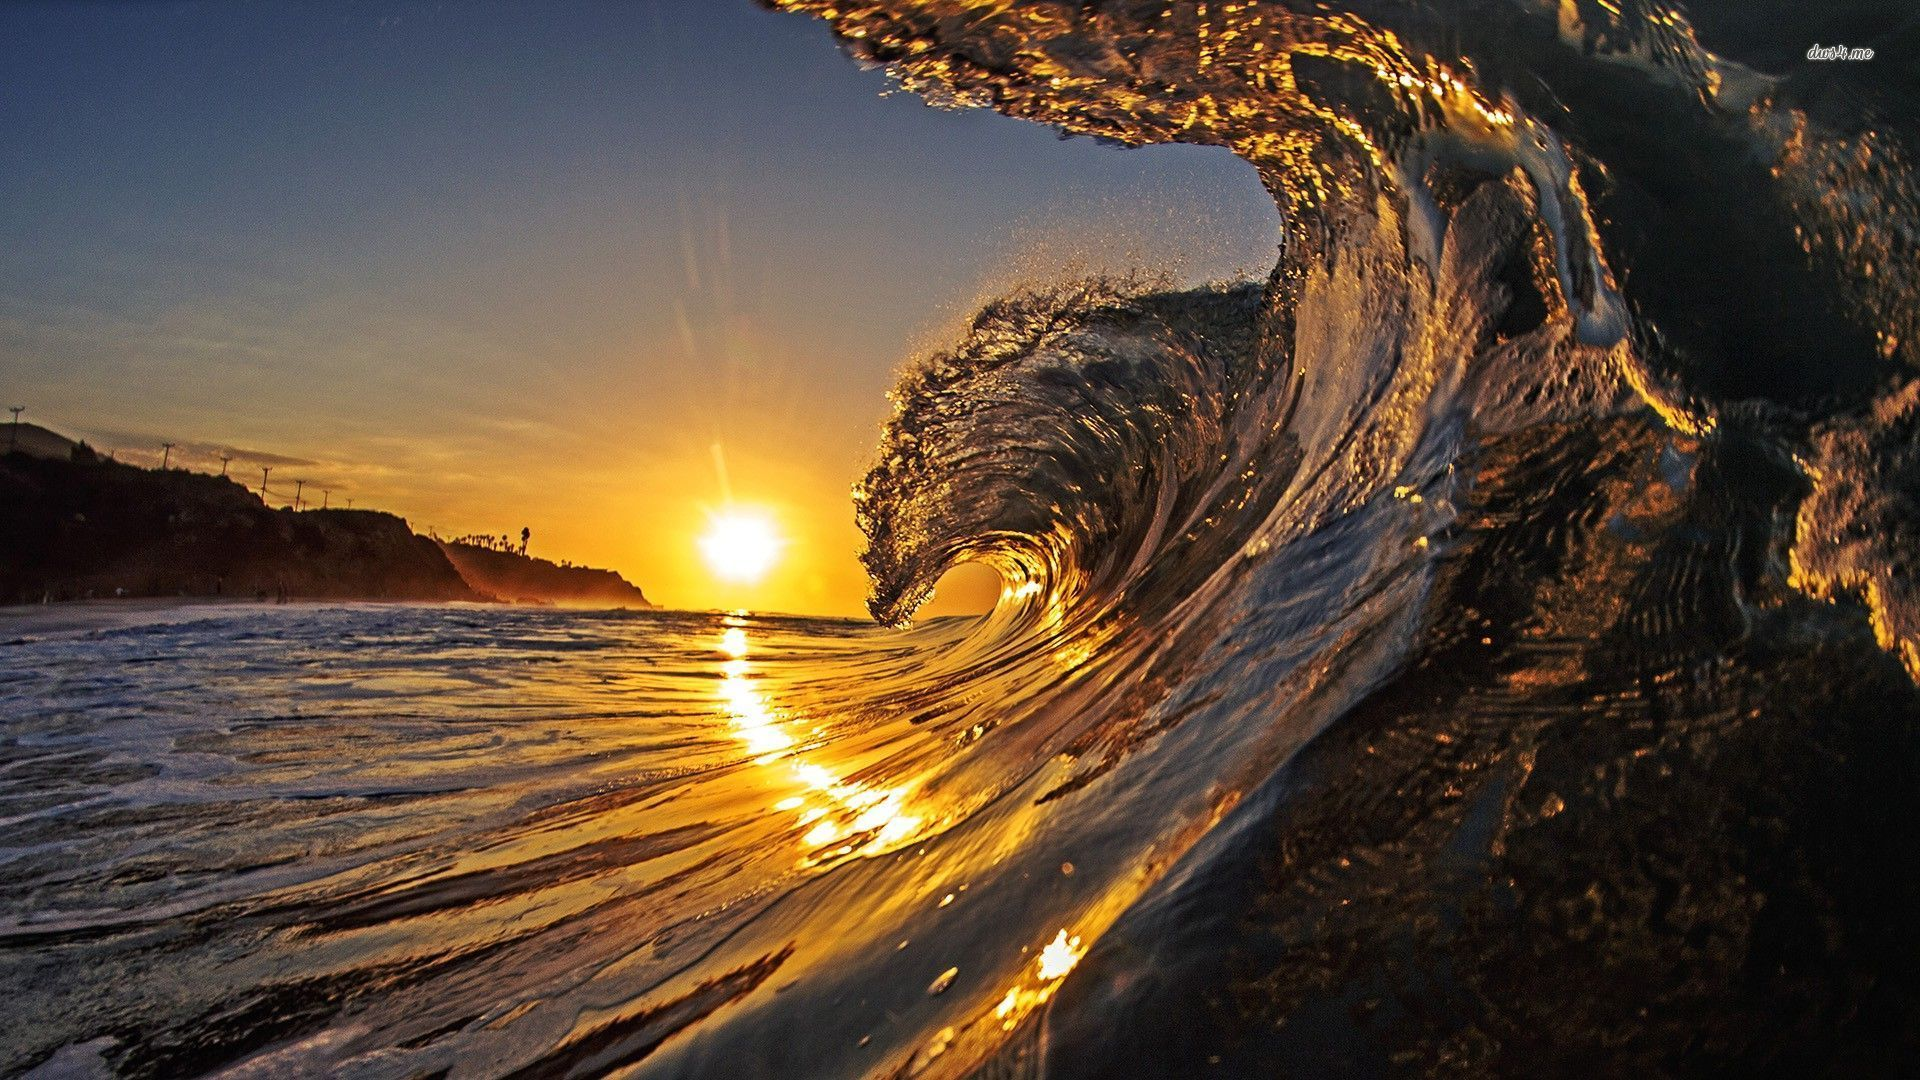 Rent A Car In Dubai >> Pin by Jorge Tavares on LANDSCAPE | Pinterest | Beach waves, Camera photography and Sunset